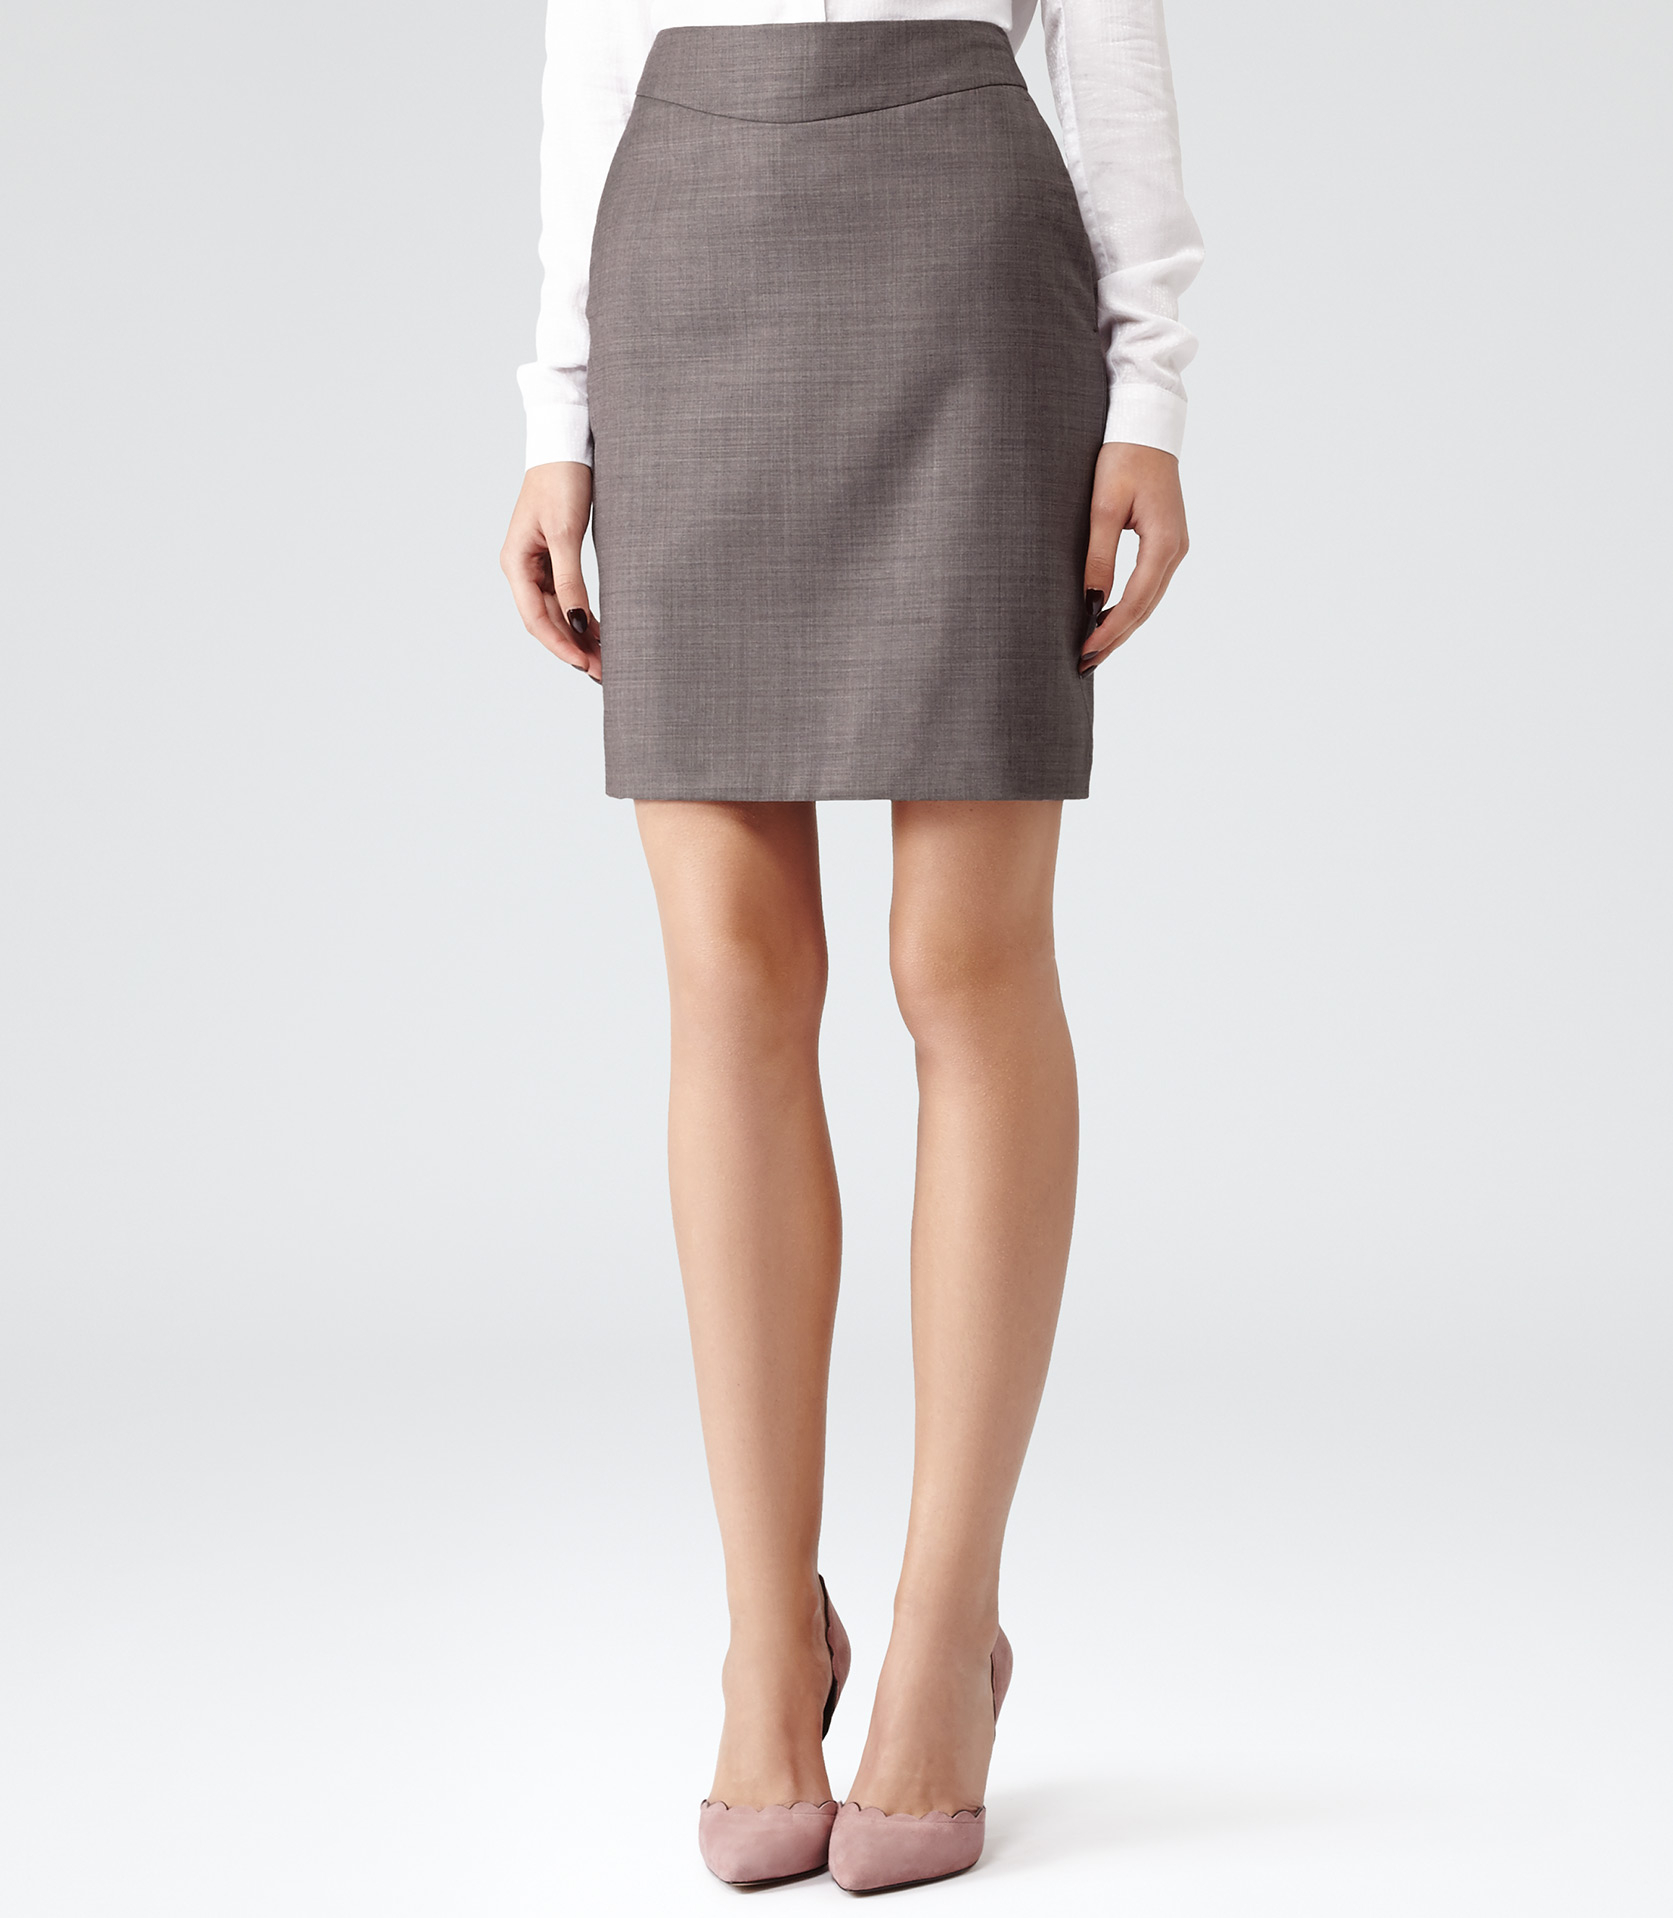 Reiss Ginger Fitted A-Line Skirt in Gray | Lyst